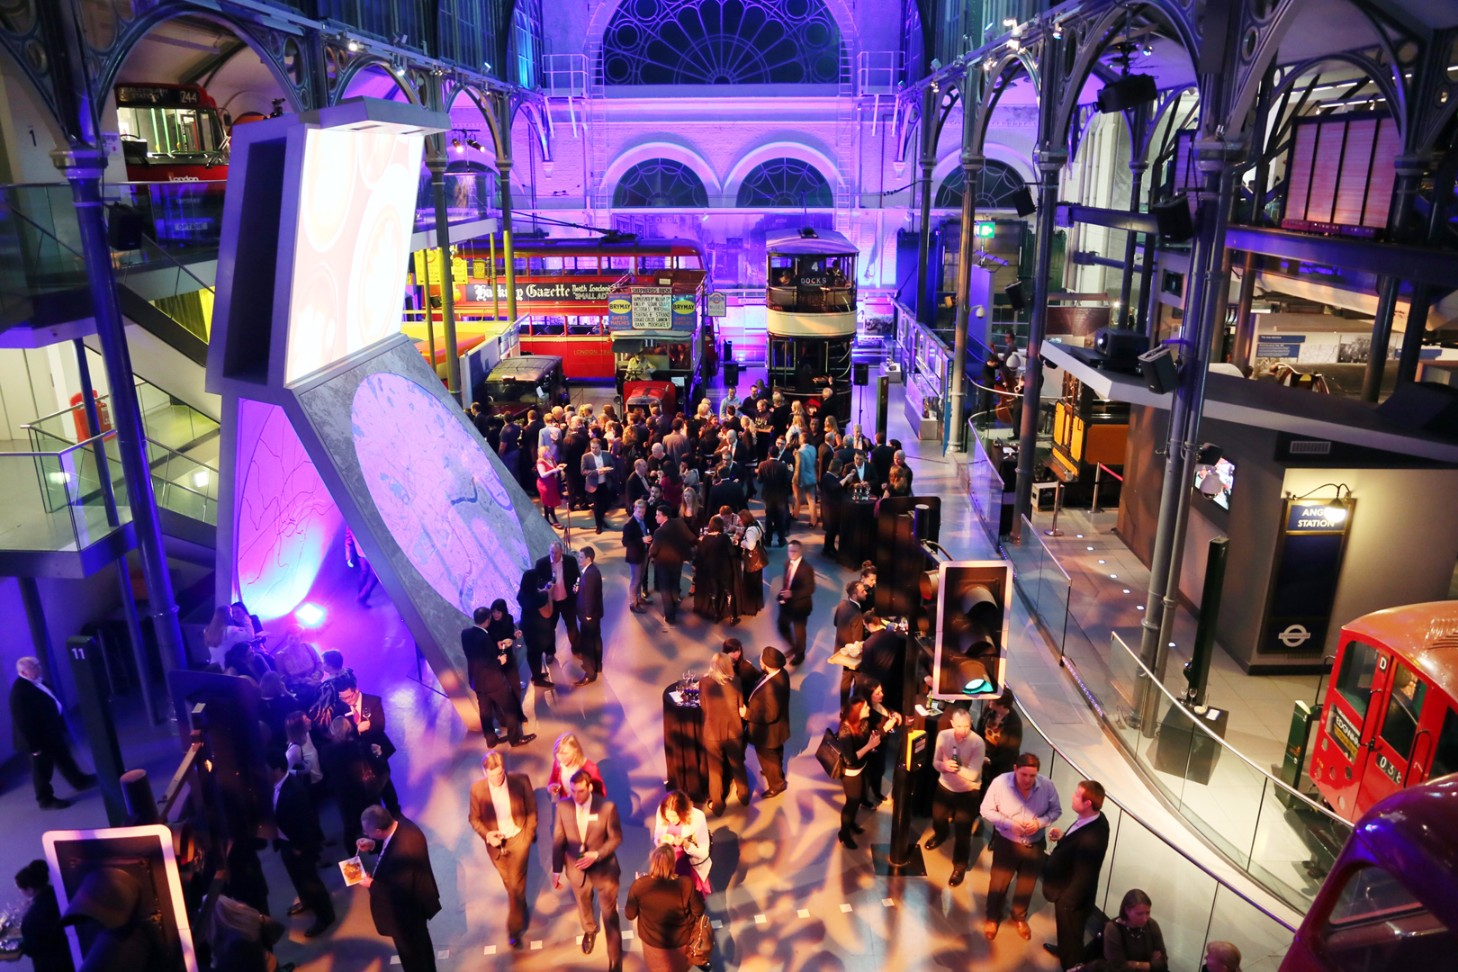 The London Transport Museum is a fantastic dry hire venue in Covent Garden.